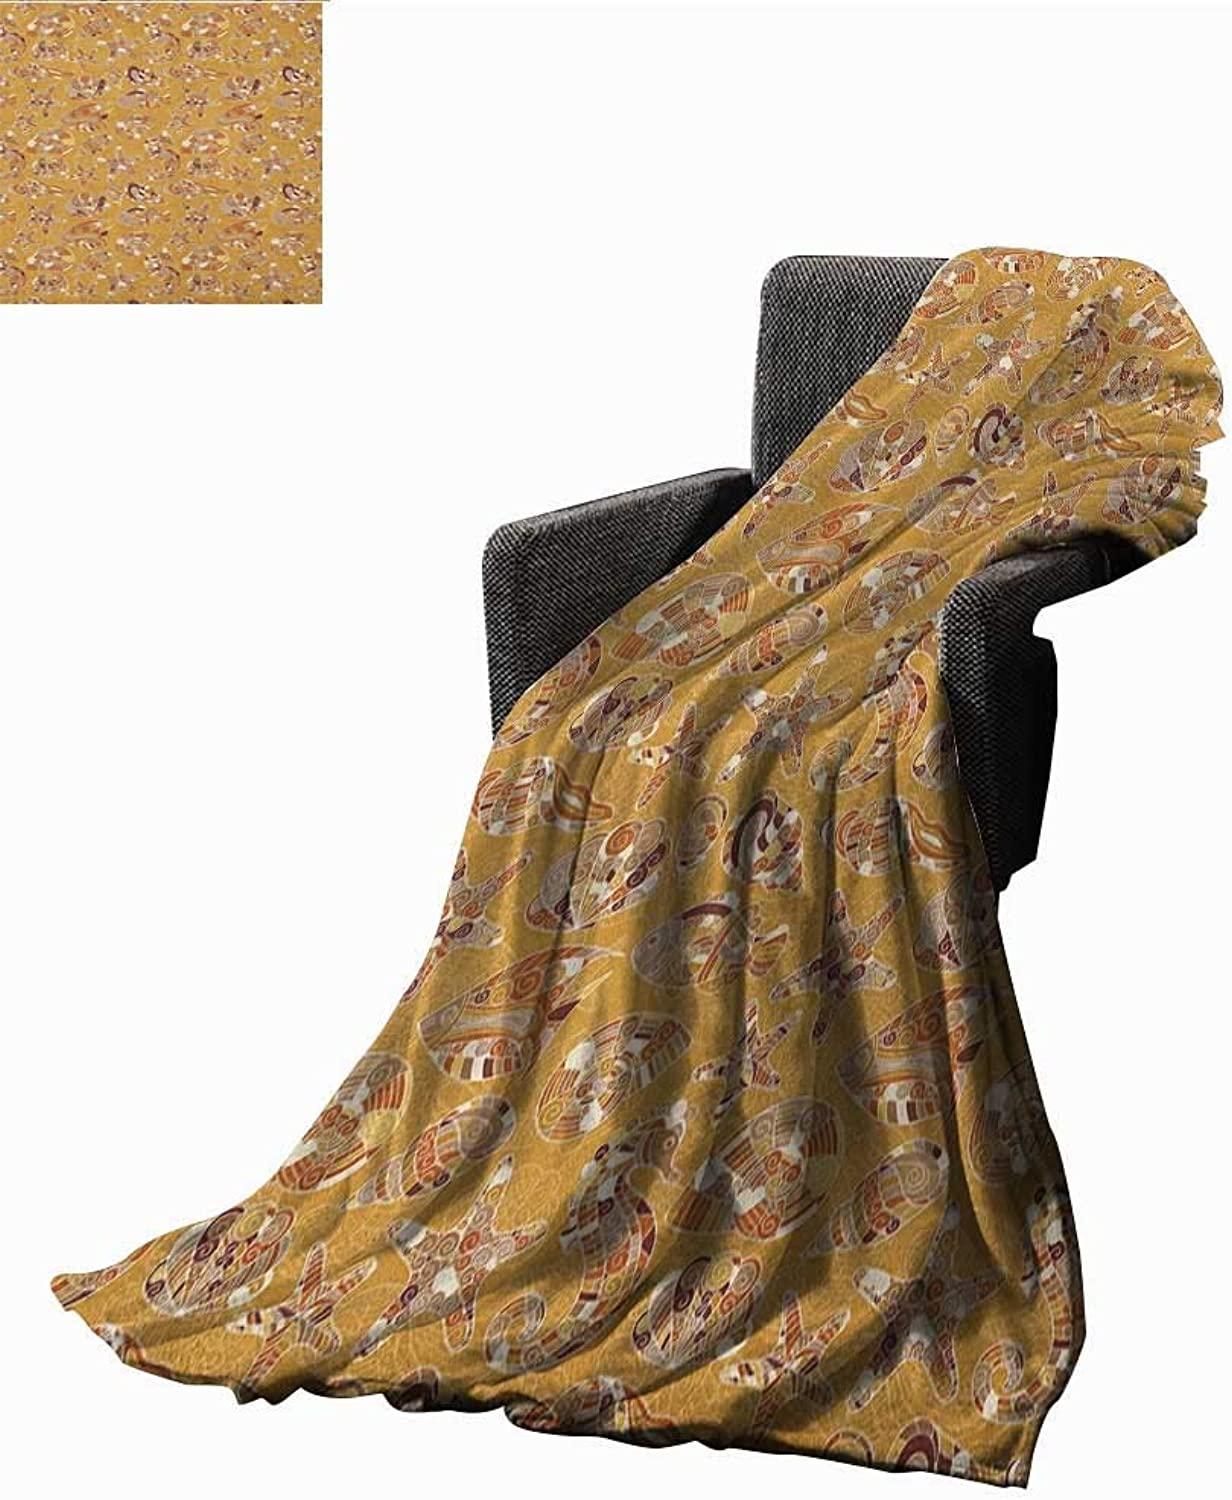 WilliamsDecor Bed or Couch 60  x 35 Ocean Microfiber All Season Blanket Pattern of Fish Shells Starfish Sea Horse Water Creatures Sea Life Illustration Print Summer Quilt Comforter Mustard Brown